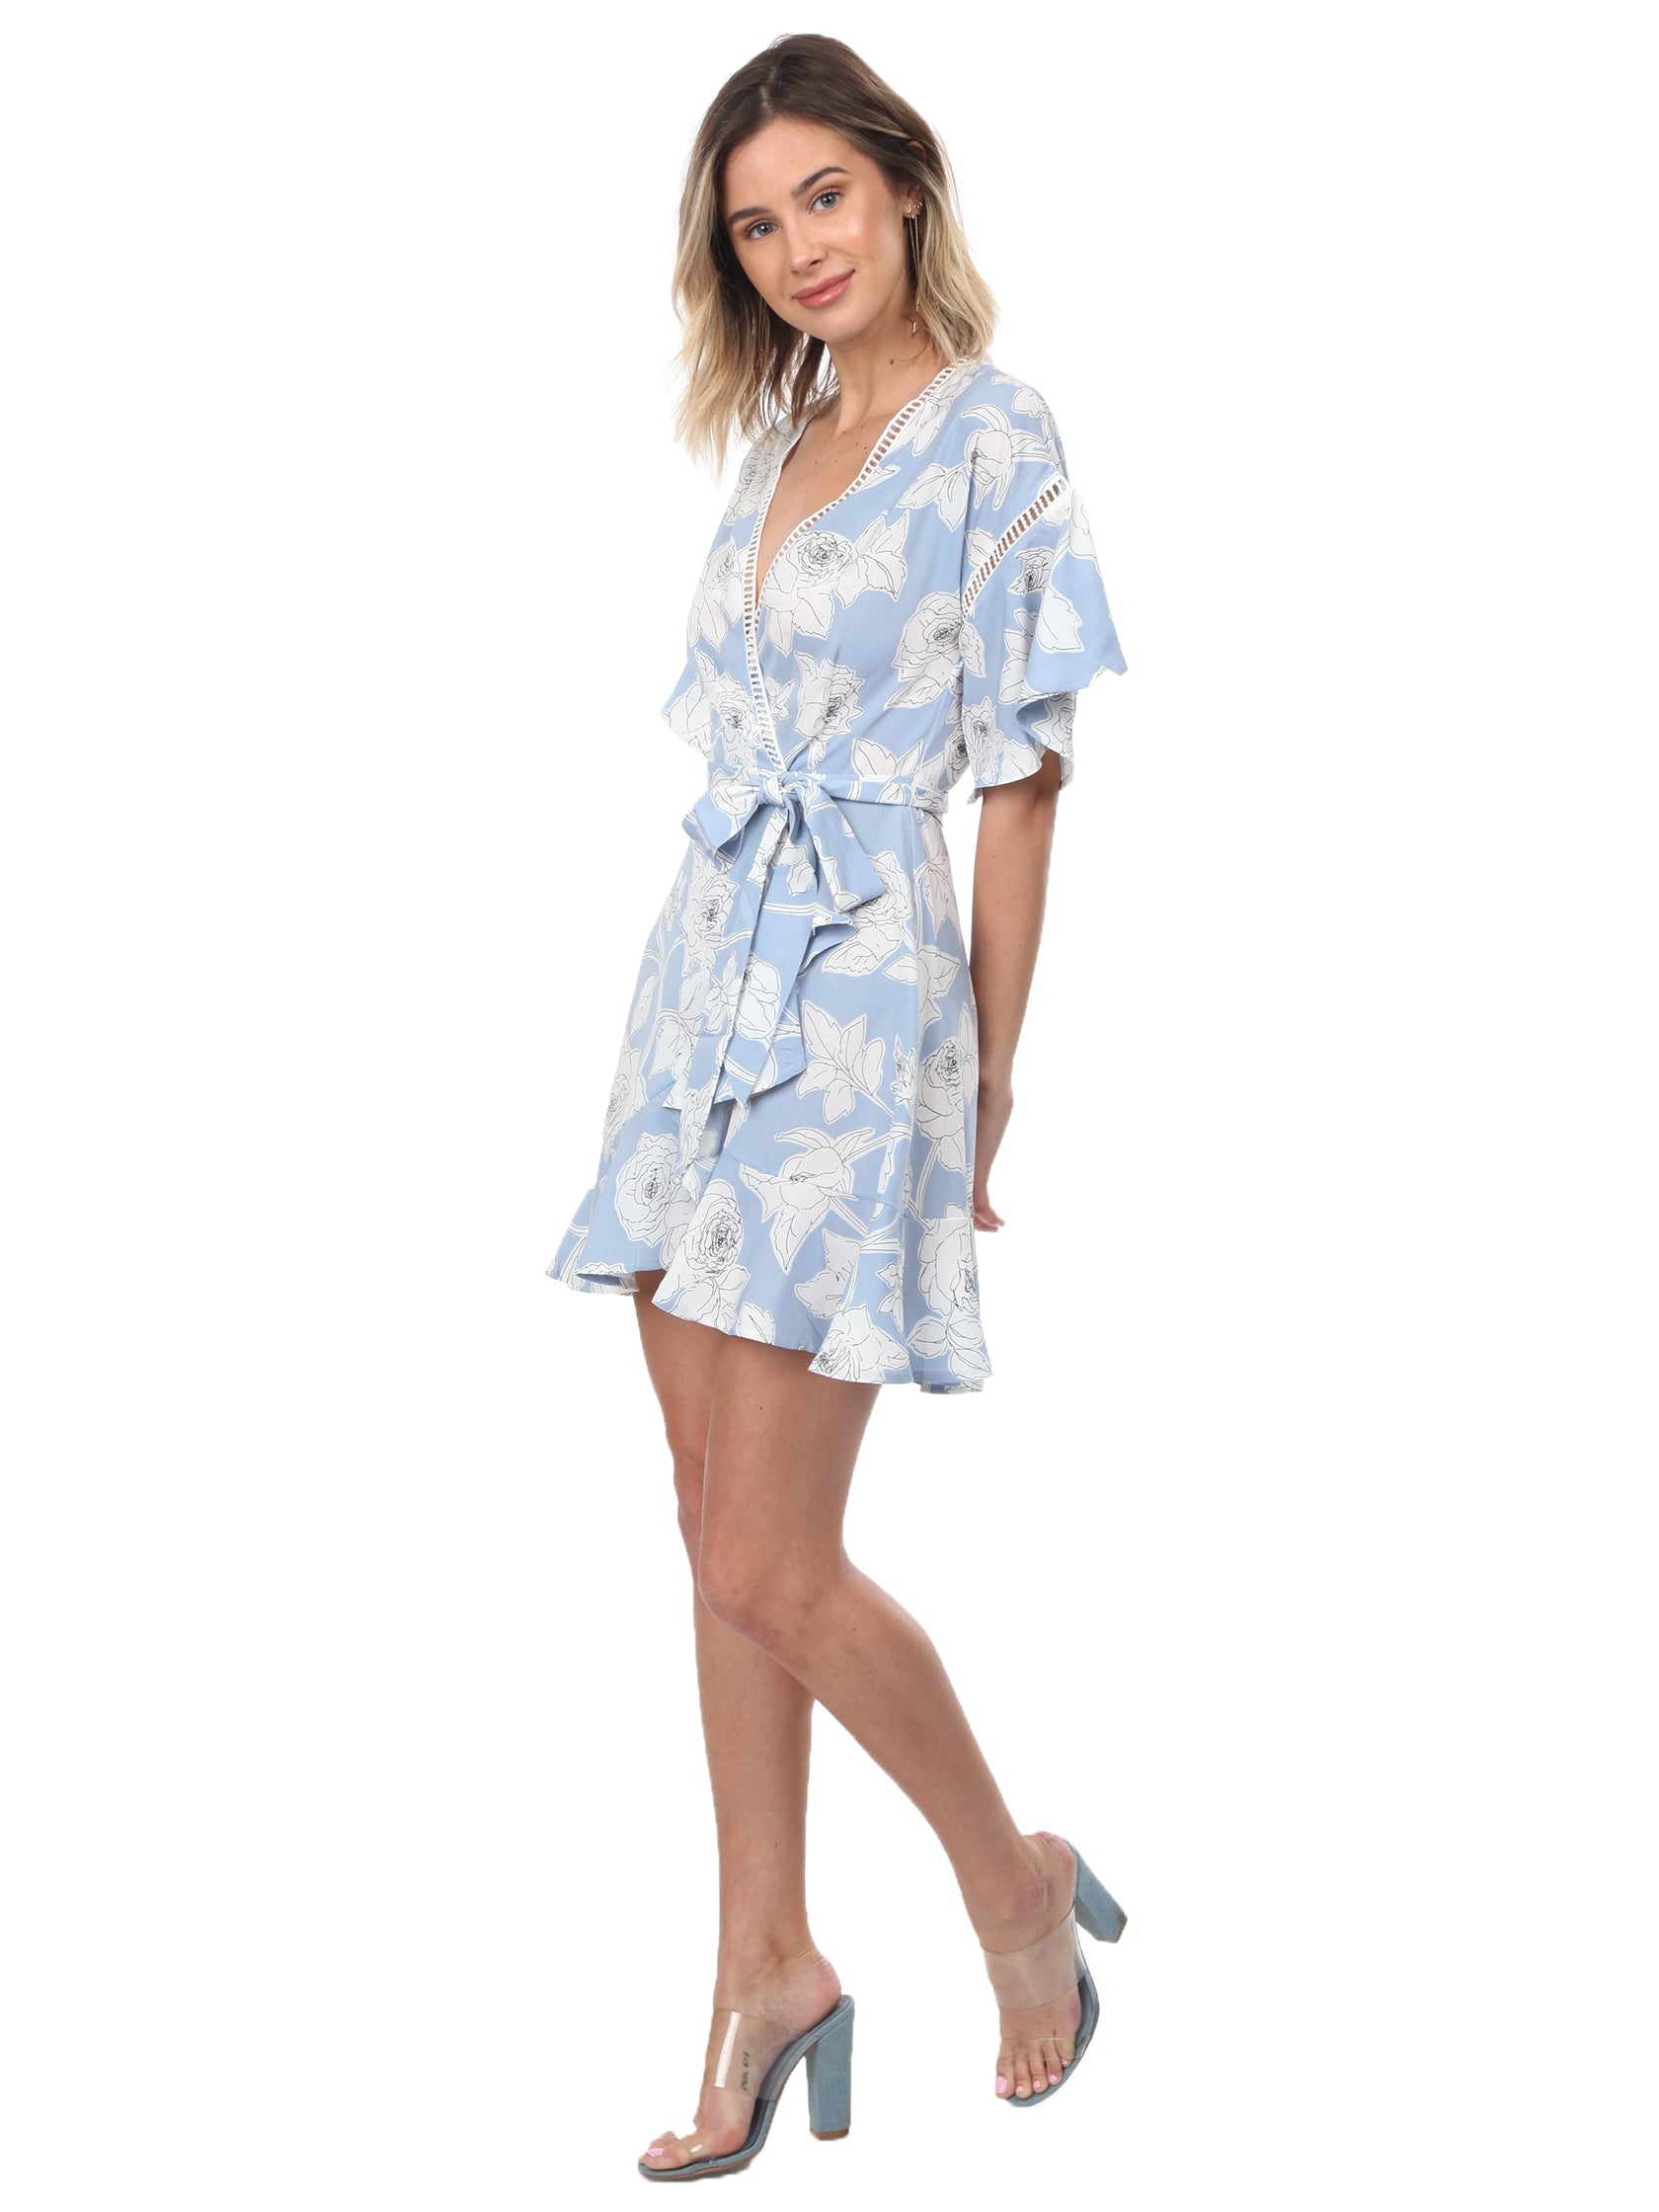 bb5959d788 Girl outfit in a dress rental from Moon River called Floral Printed Wrap  Dress